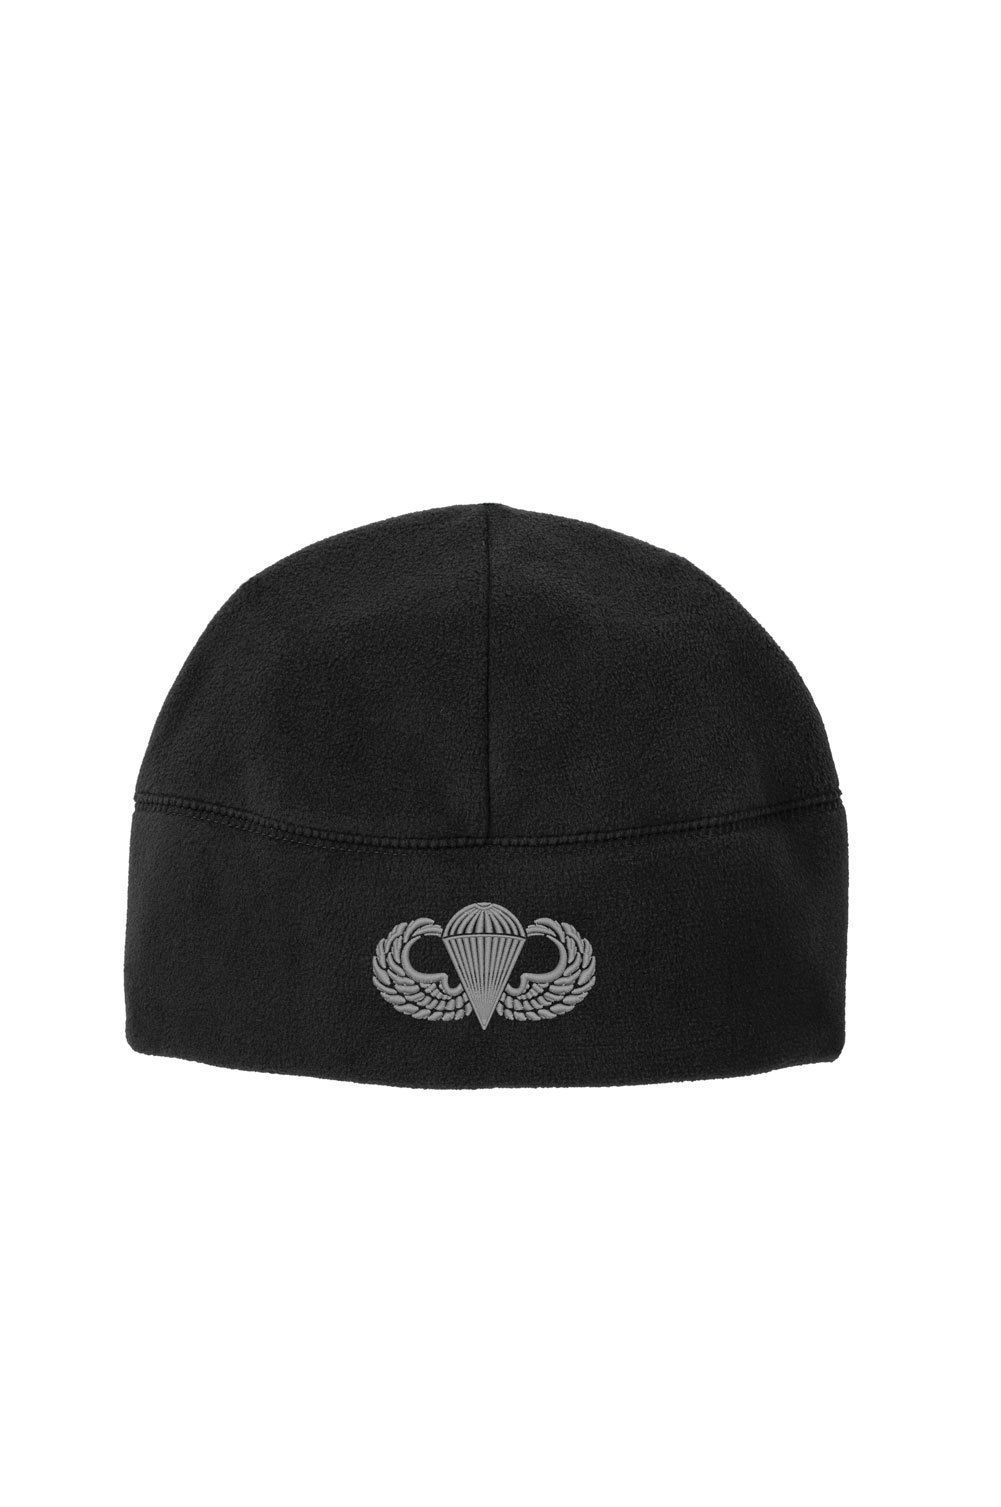 Primary image for Parachute Badge Army Fleece Watch Cap Beanie